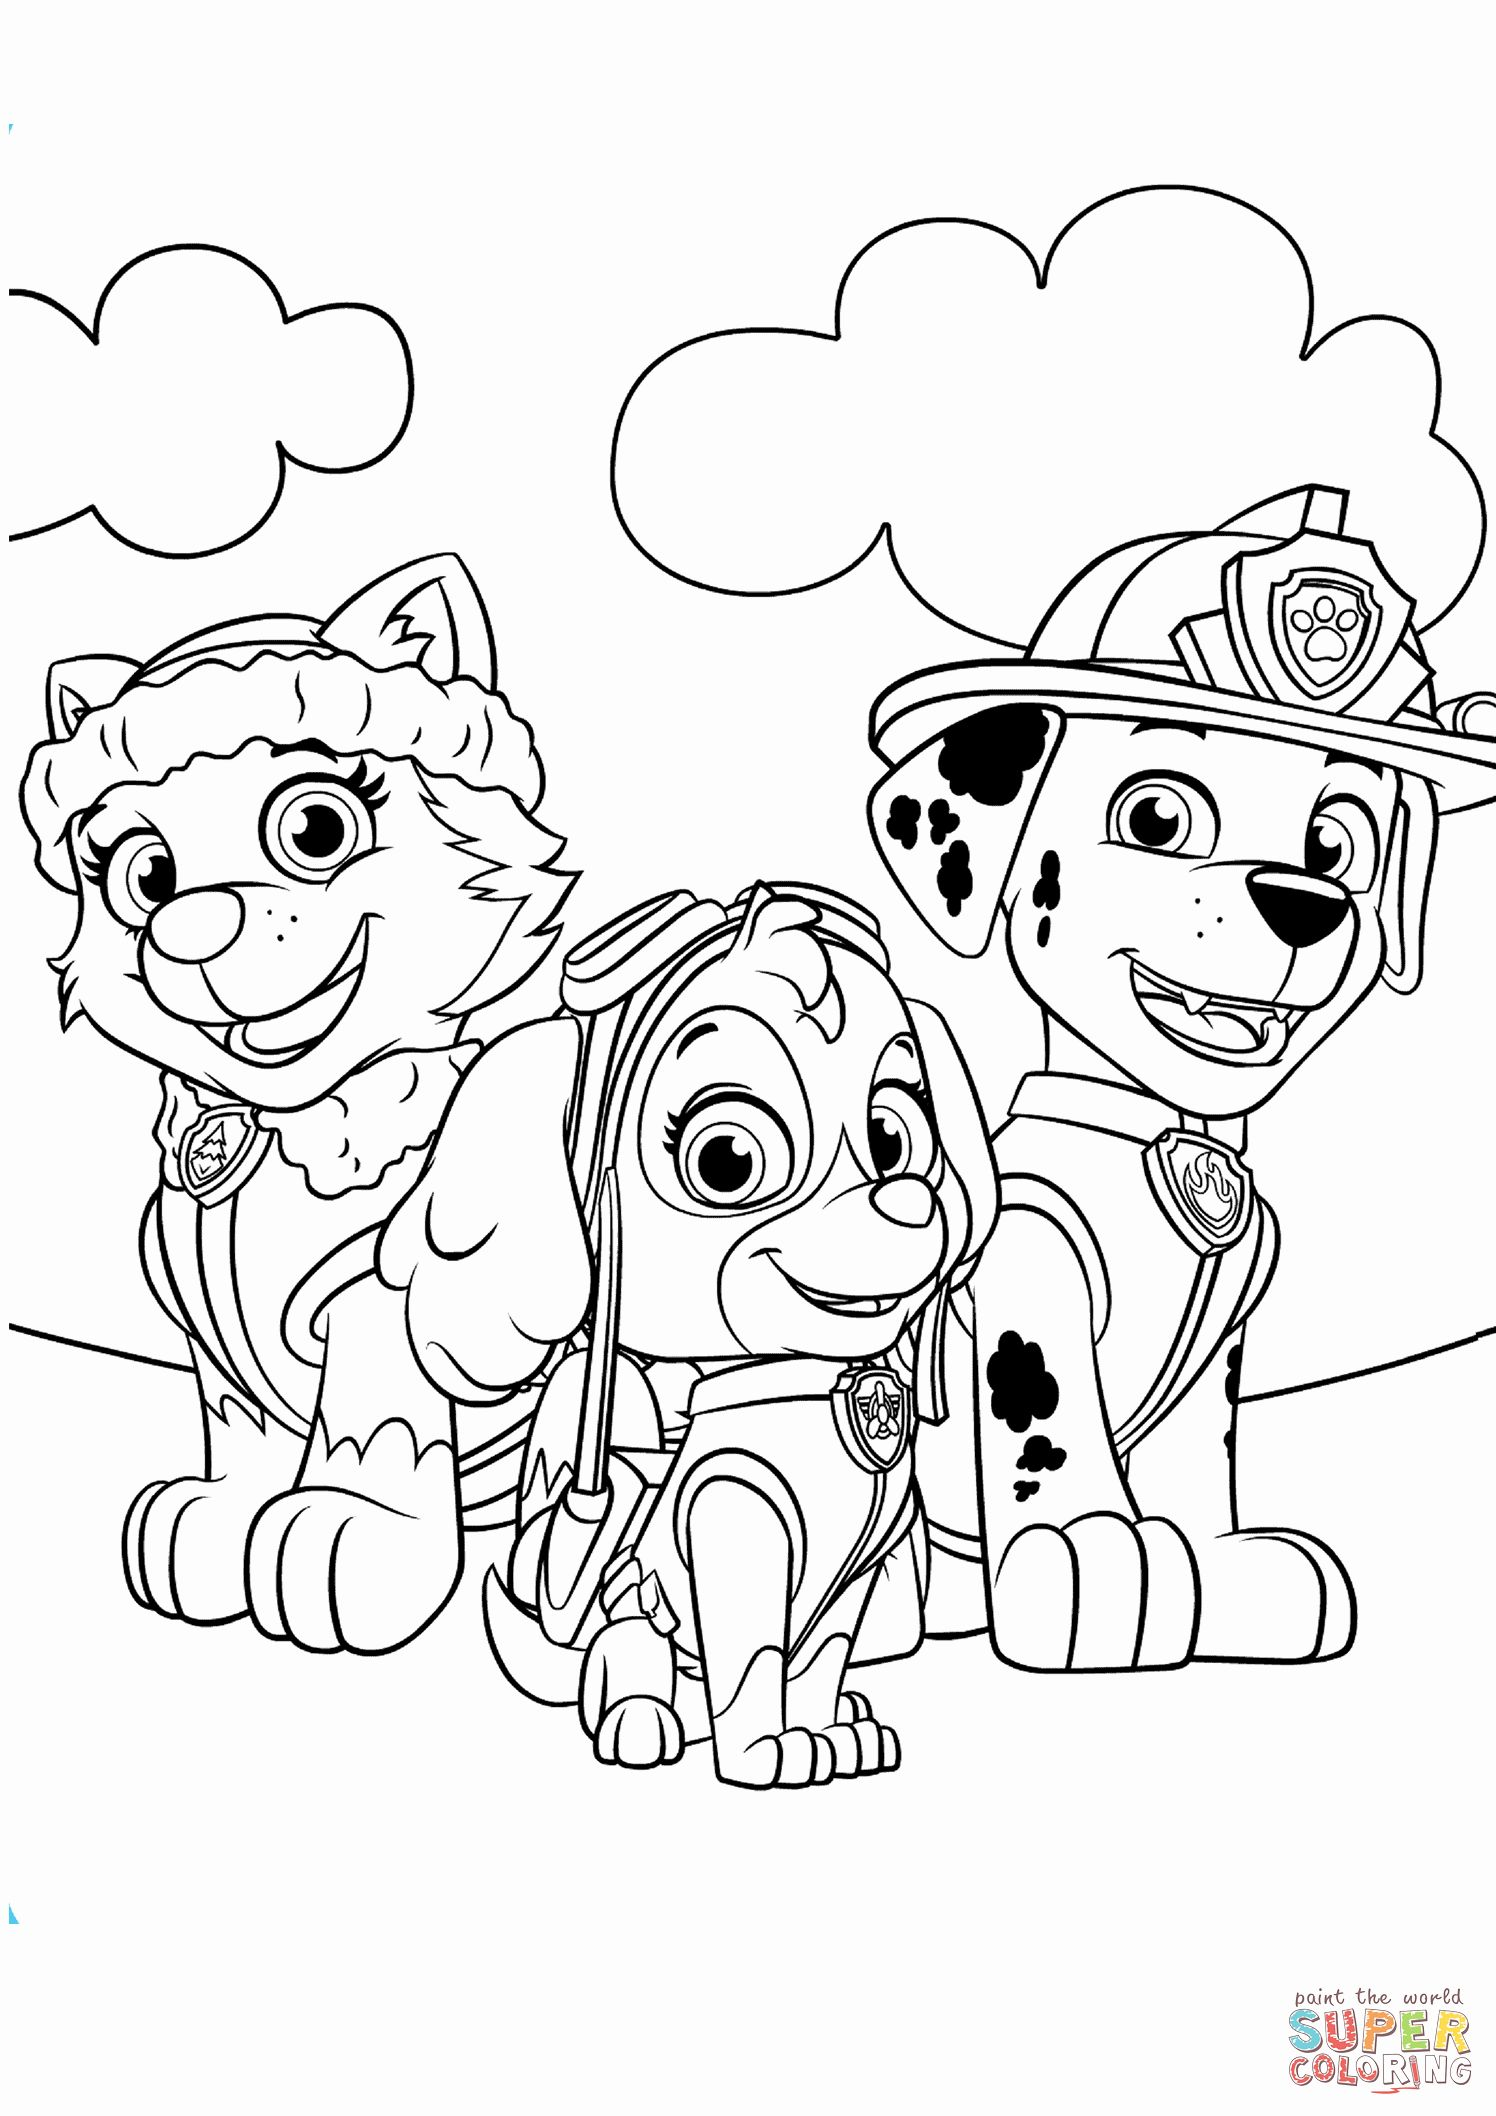 Paw Patrol Skye Coloring Page Best Of Everest Marshall And Skye Coloring Page Paw Patrol Coloring Paw Patrol Coloring Pages Sky Paw Patrol